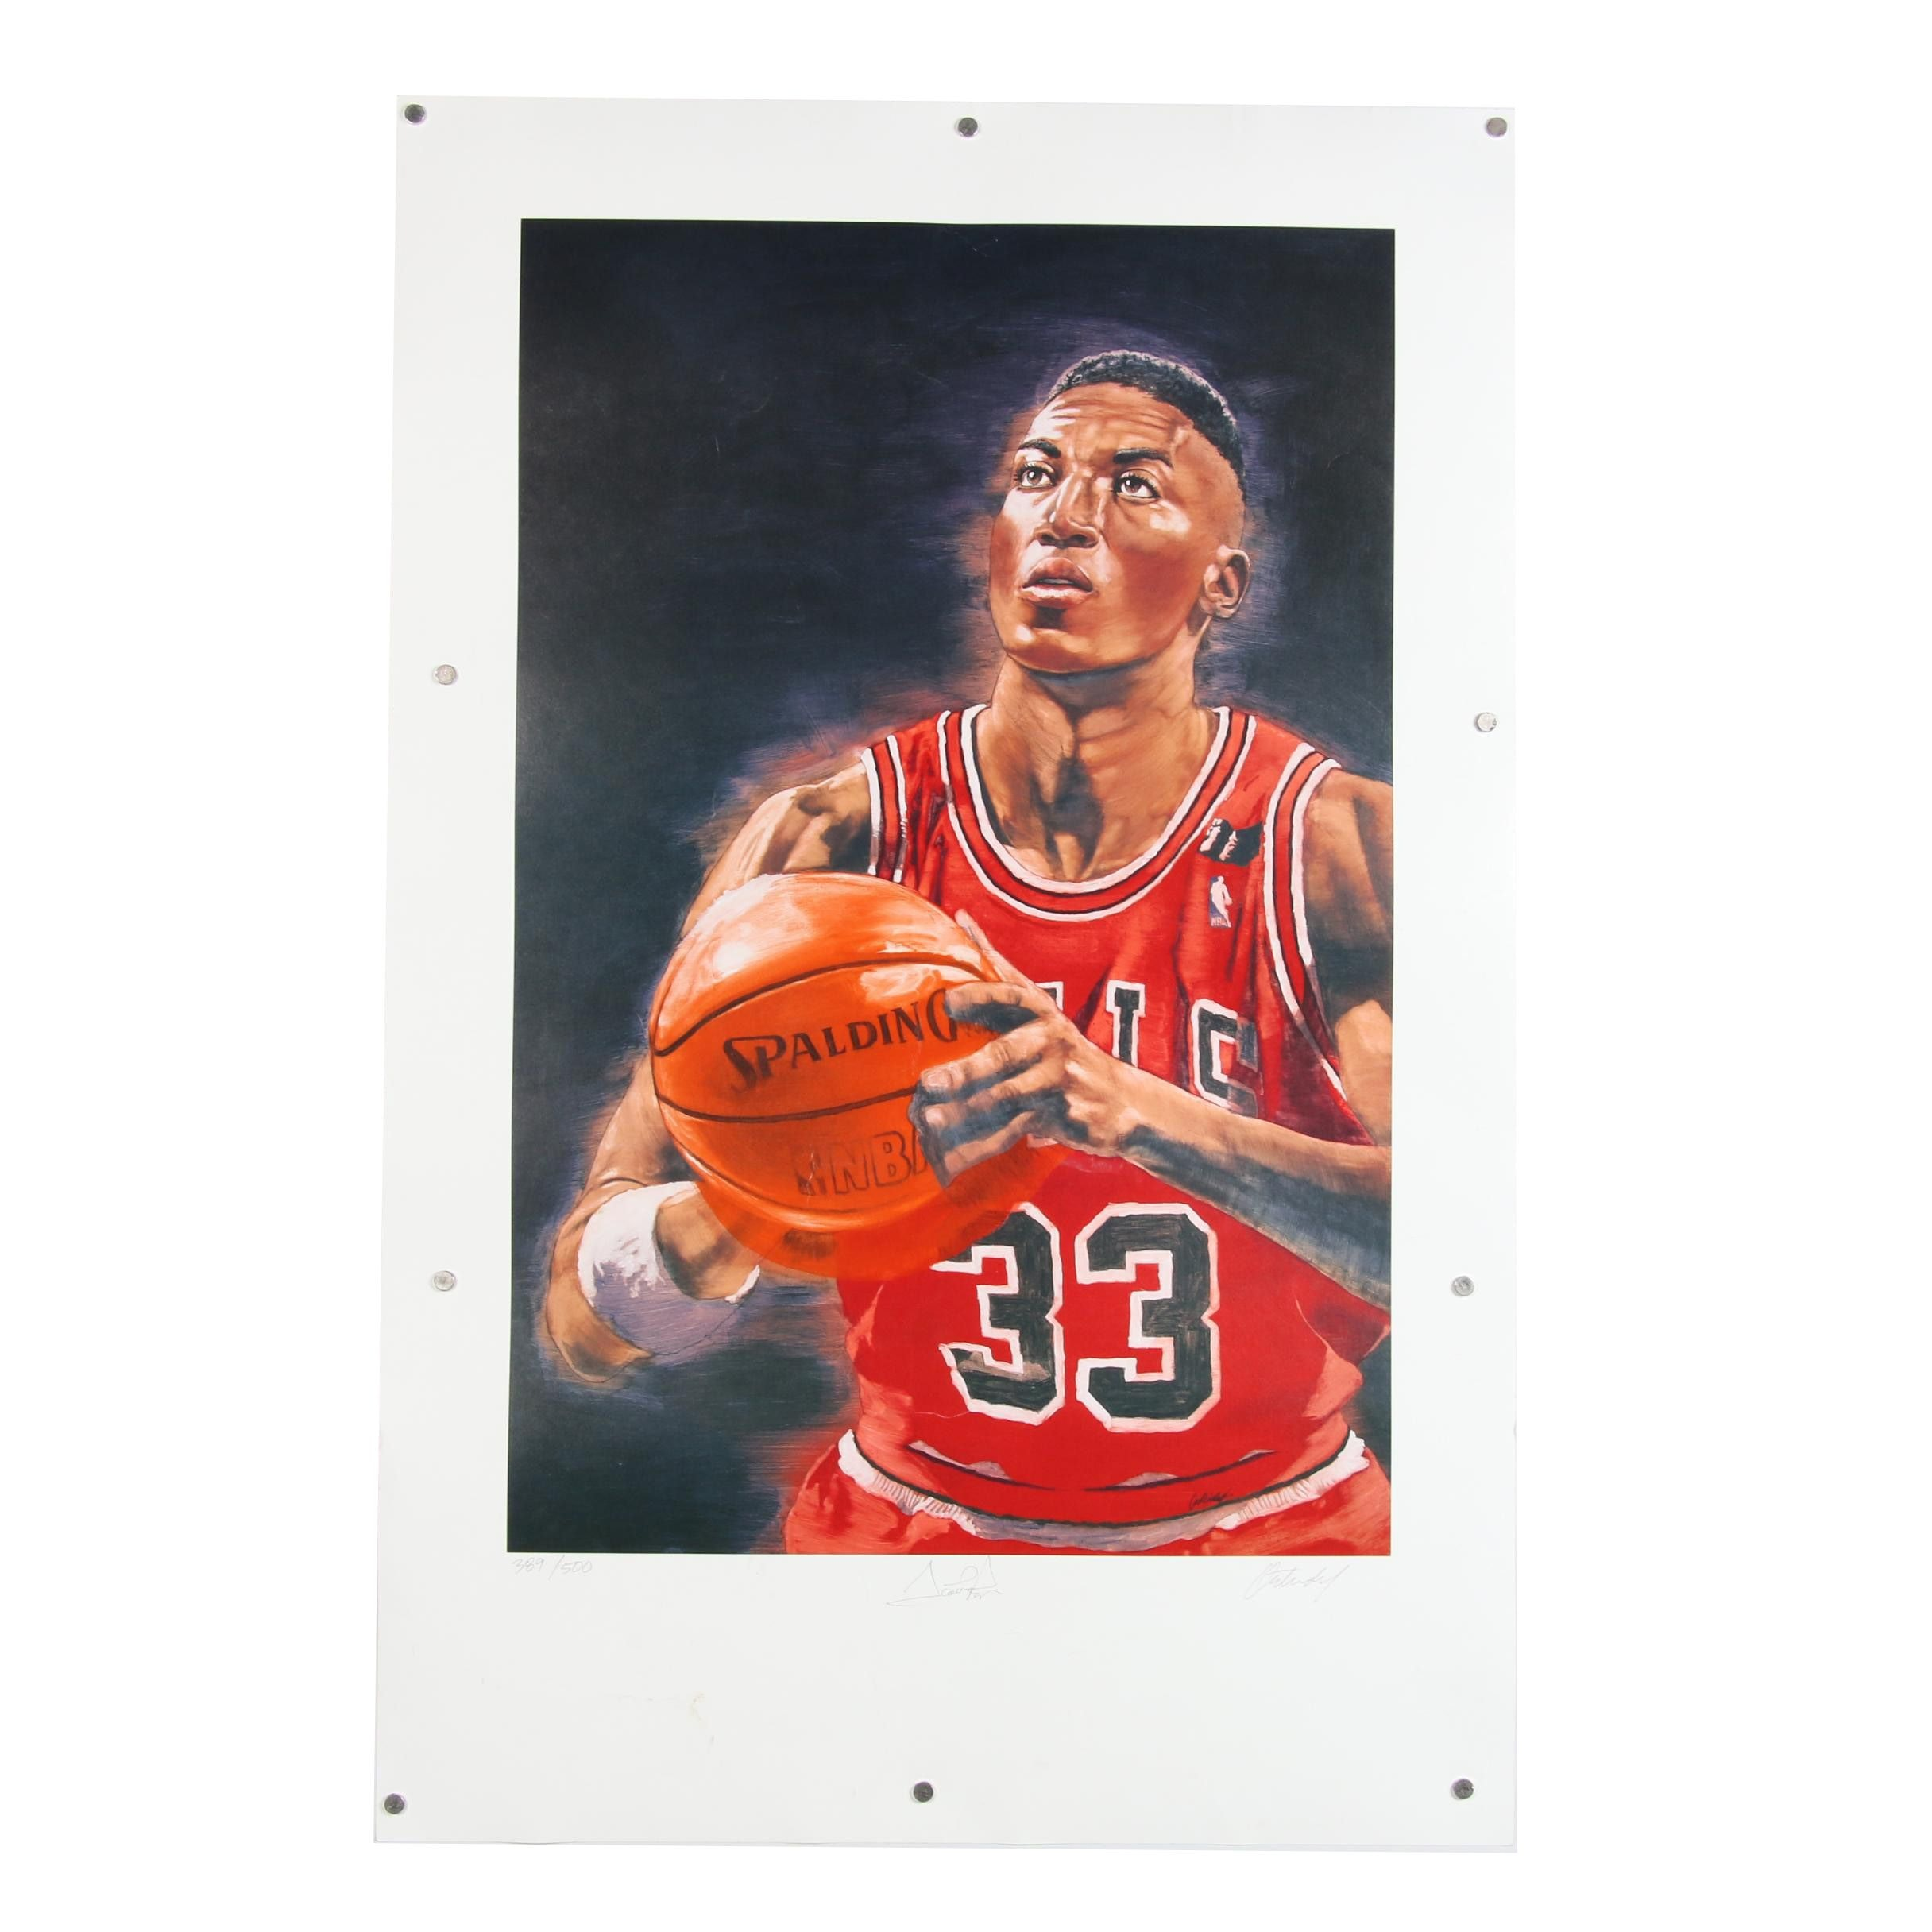 Scottie Pippen Autographed Limited Edition Offset Lithograph Poster